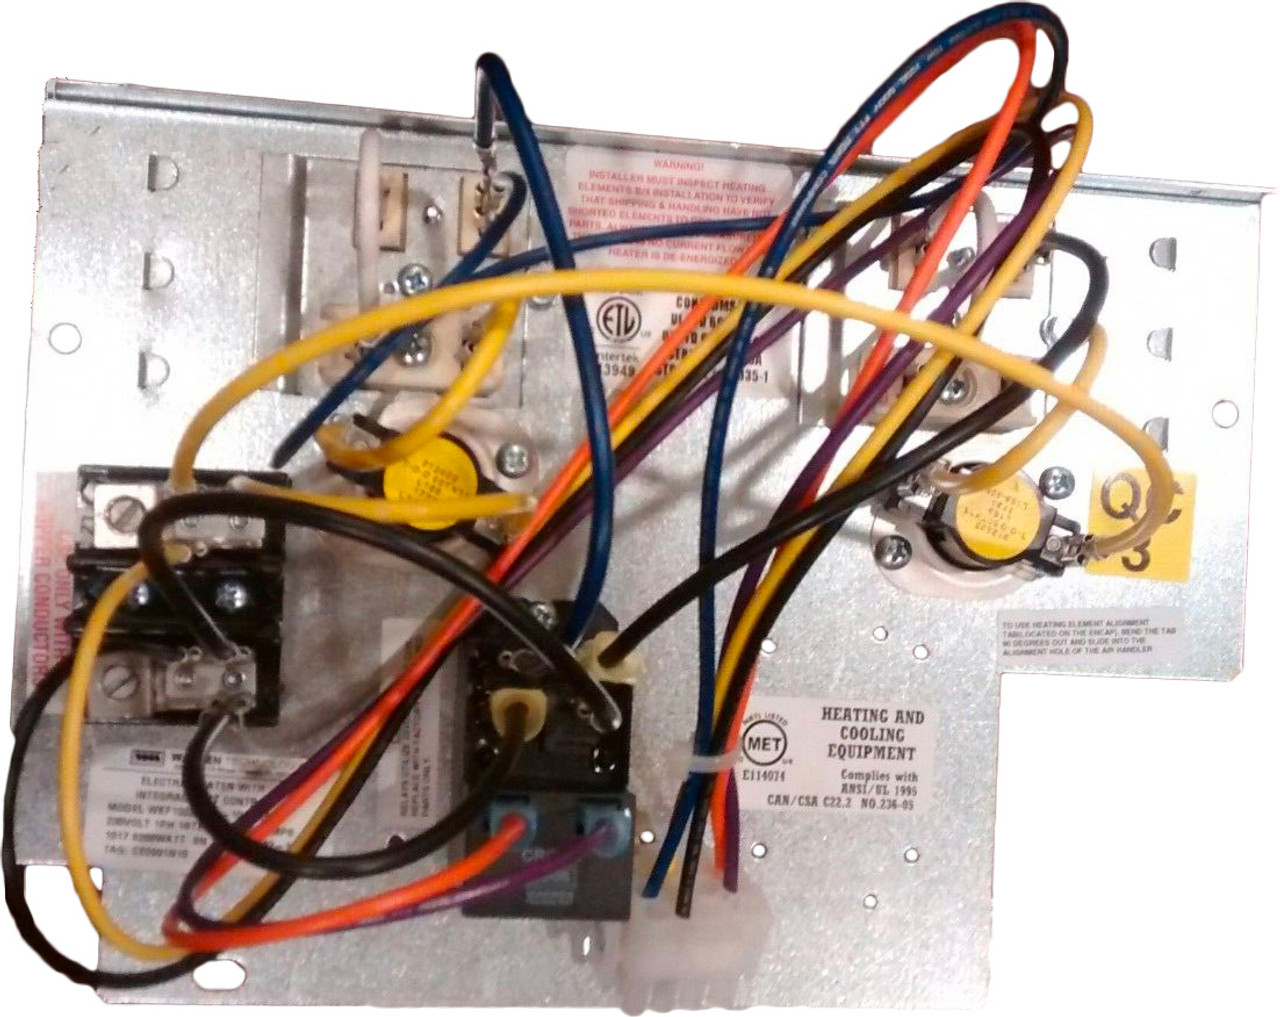 carrier bryant payne 10kw electric heat strip 230 1 ce0901n10 wkf1002 International Comfort Products Wiring Diagram